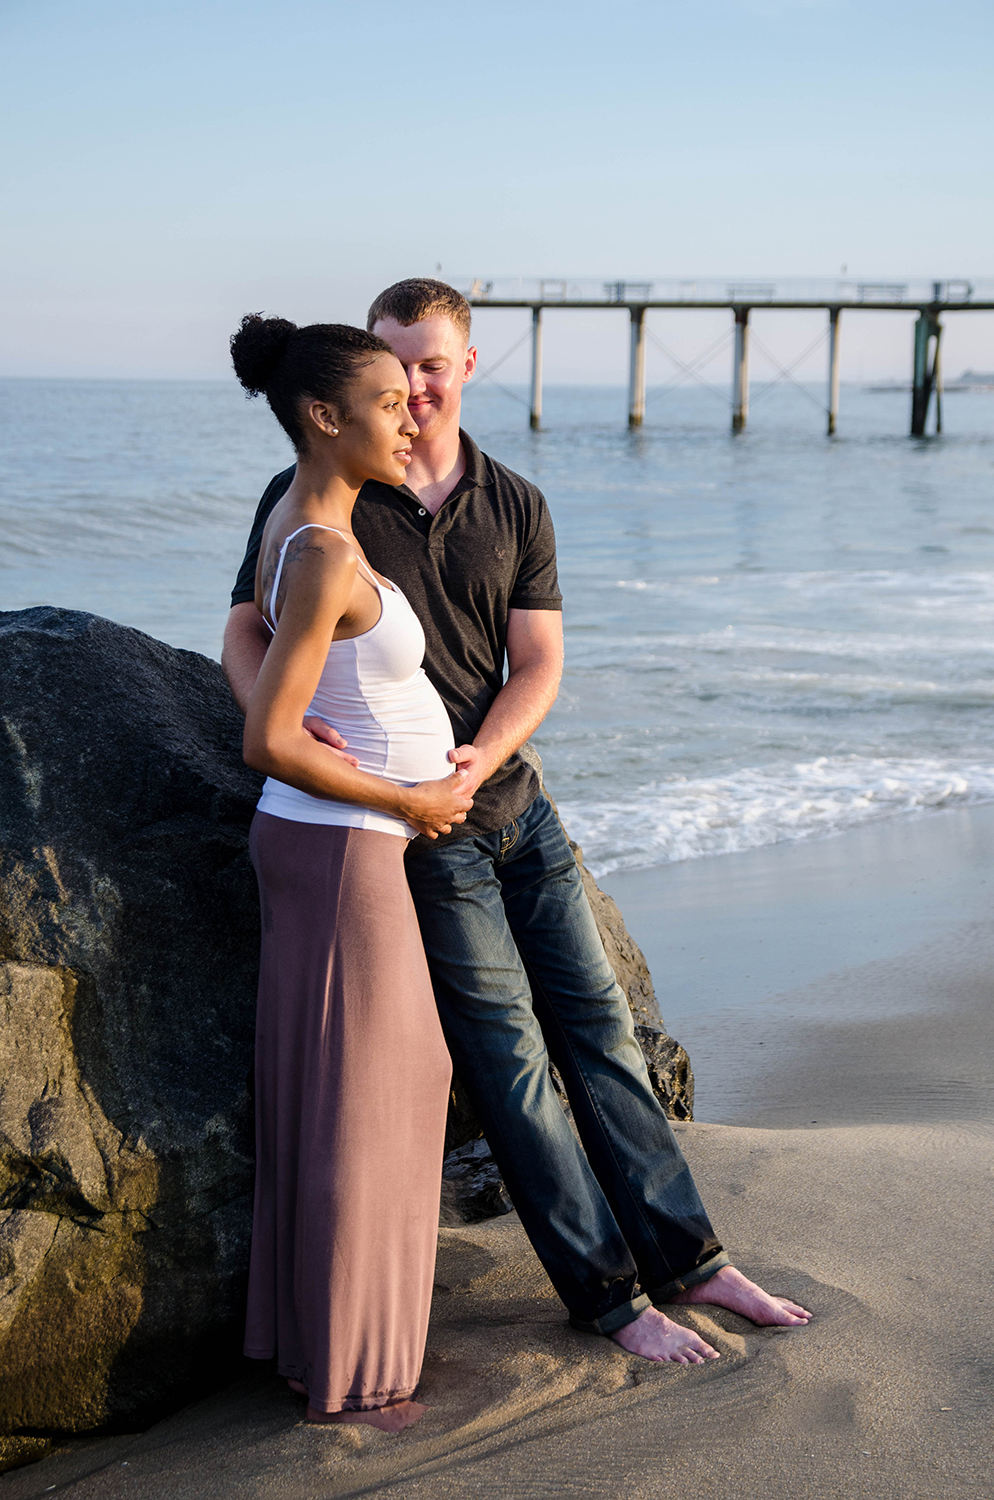 Josh+Ashlee l Beach Sunset Maternity l Avon NJ l Olivia Christina Photography 9.jpg